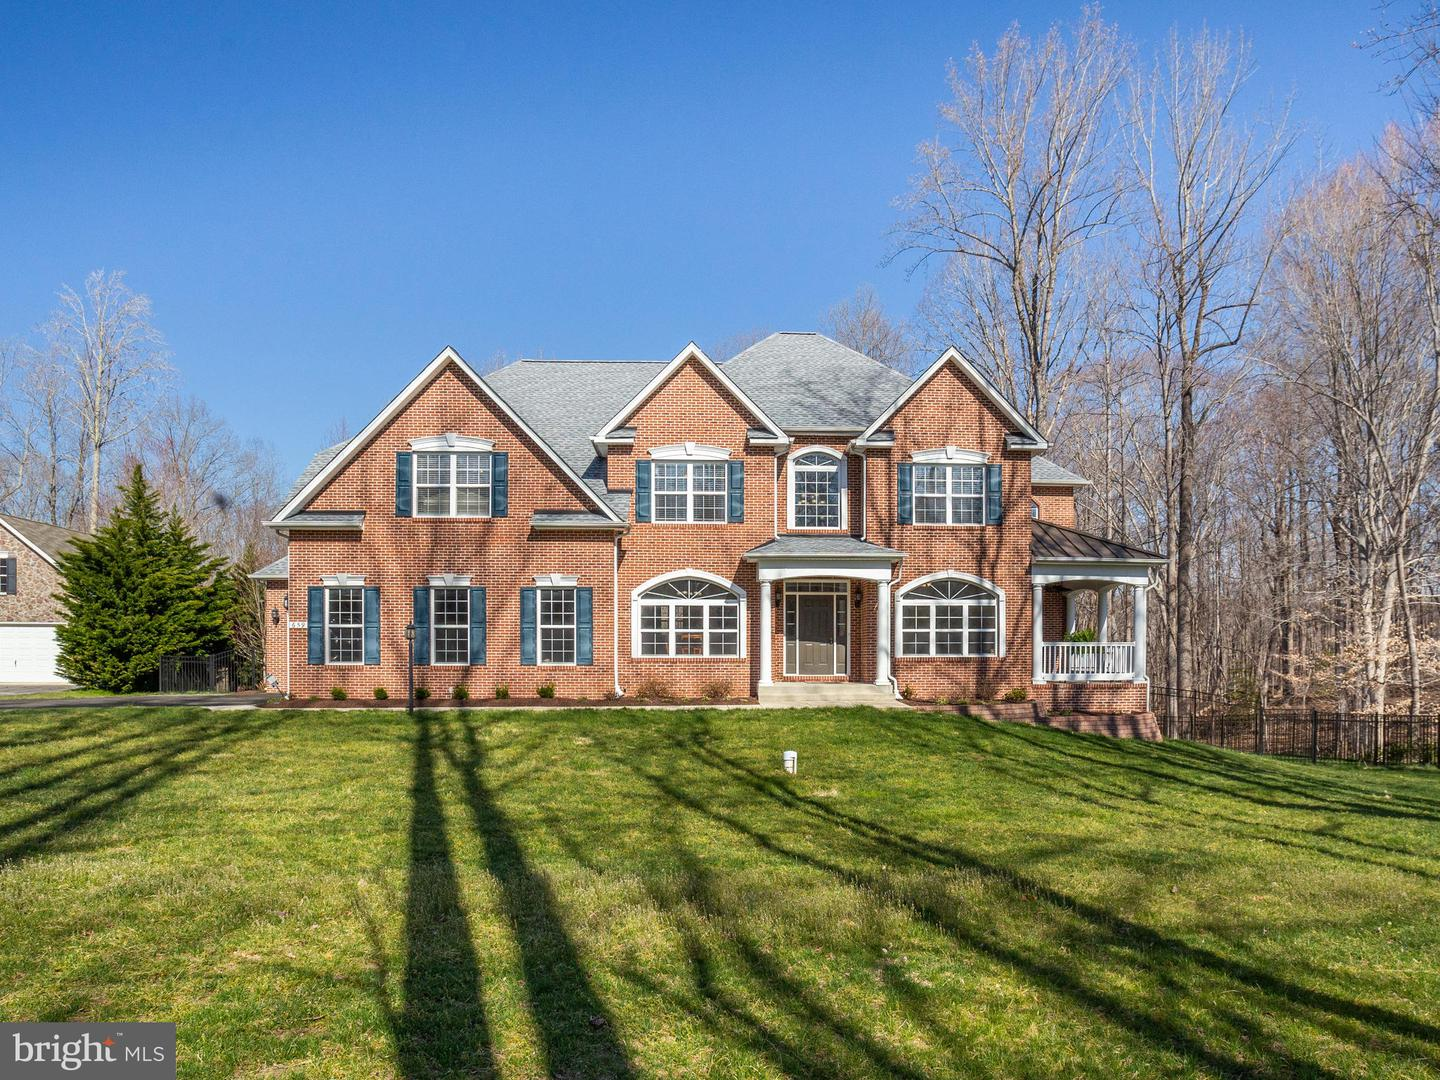 Single Family Home for Sale at 659 Good Shepherd Way 659 Good Shepherd Way Owings, Maryland 20736 United States